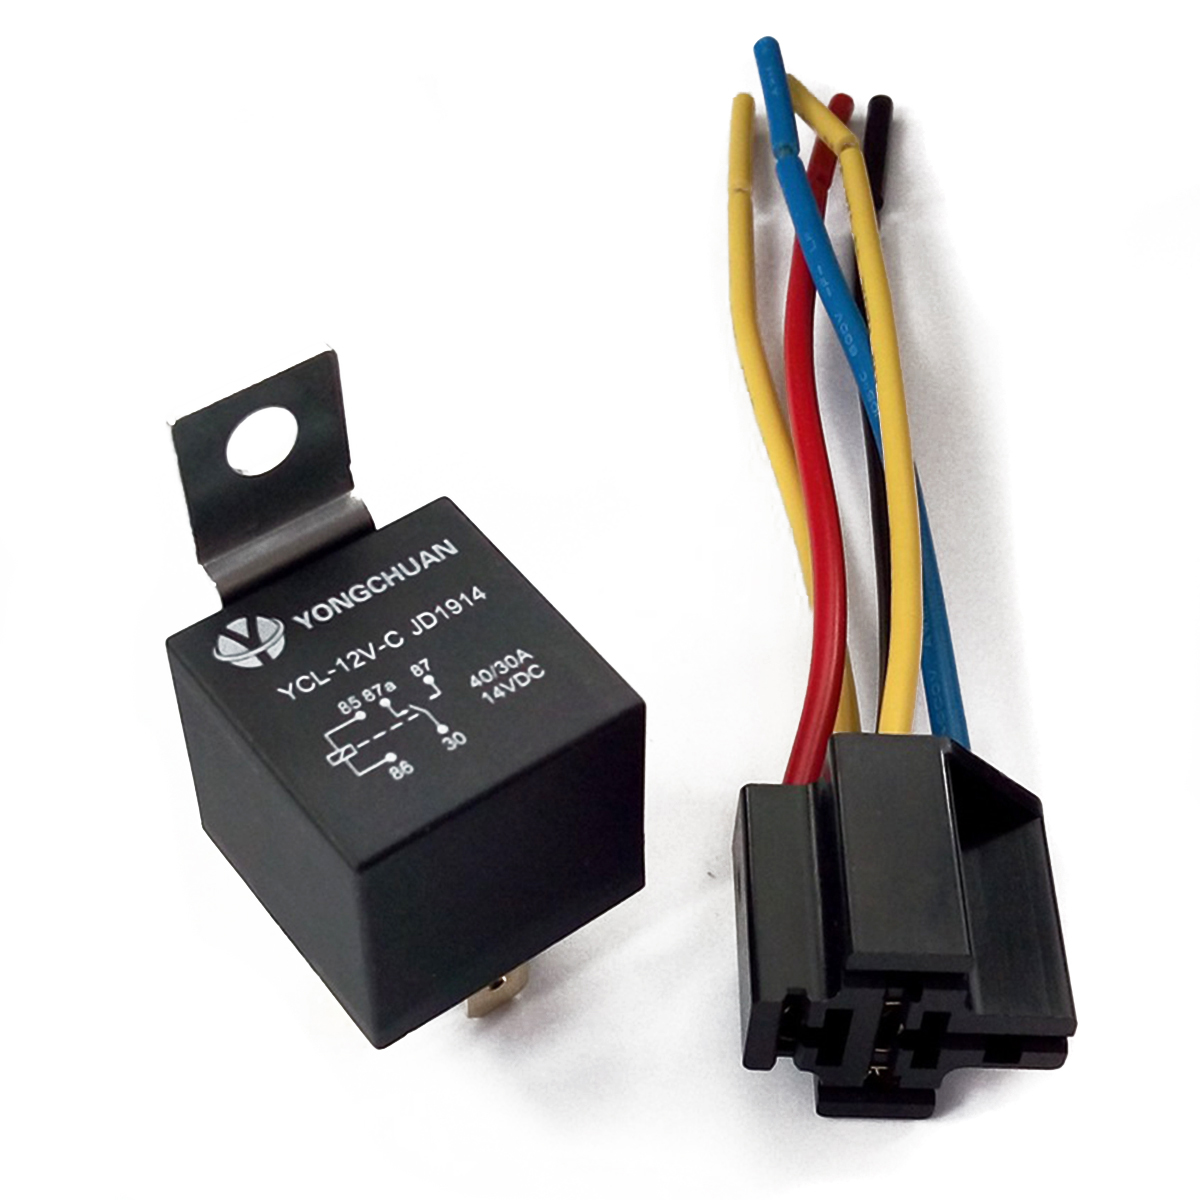 Stupendous Lot5 New 12 Volt 30 40 Amp Spdt Automotive Relay With Wires Wiring Cloud Genionhyedimohammedshrineorg